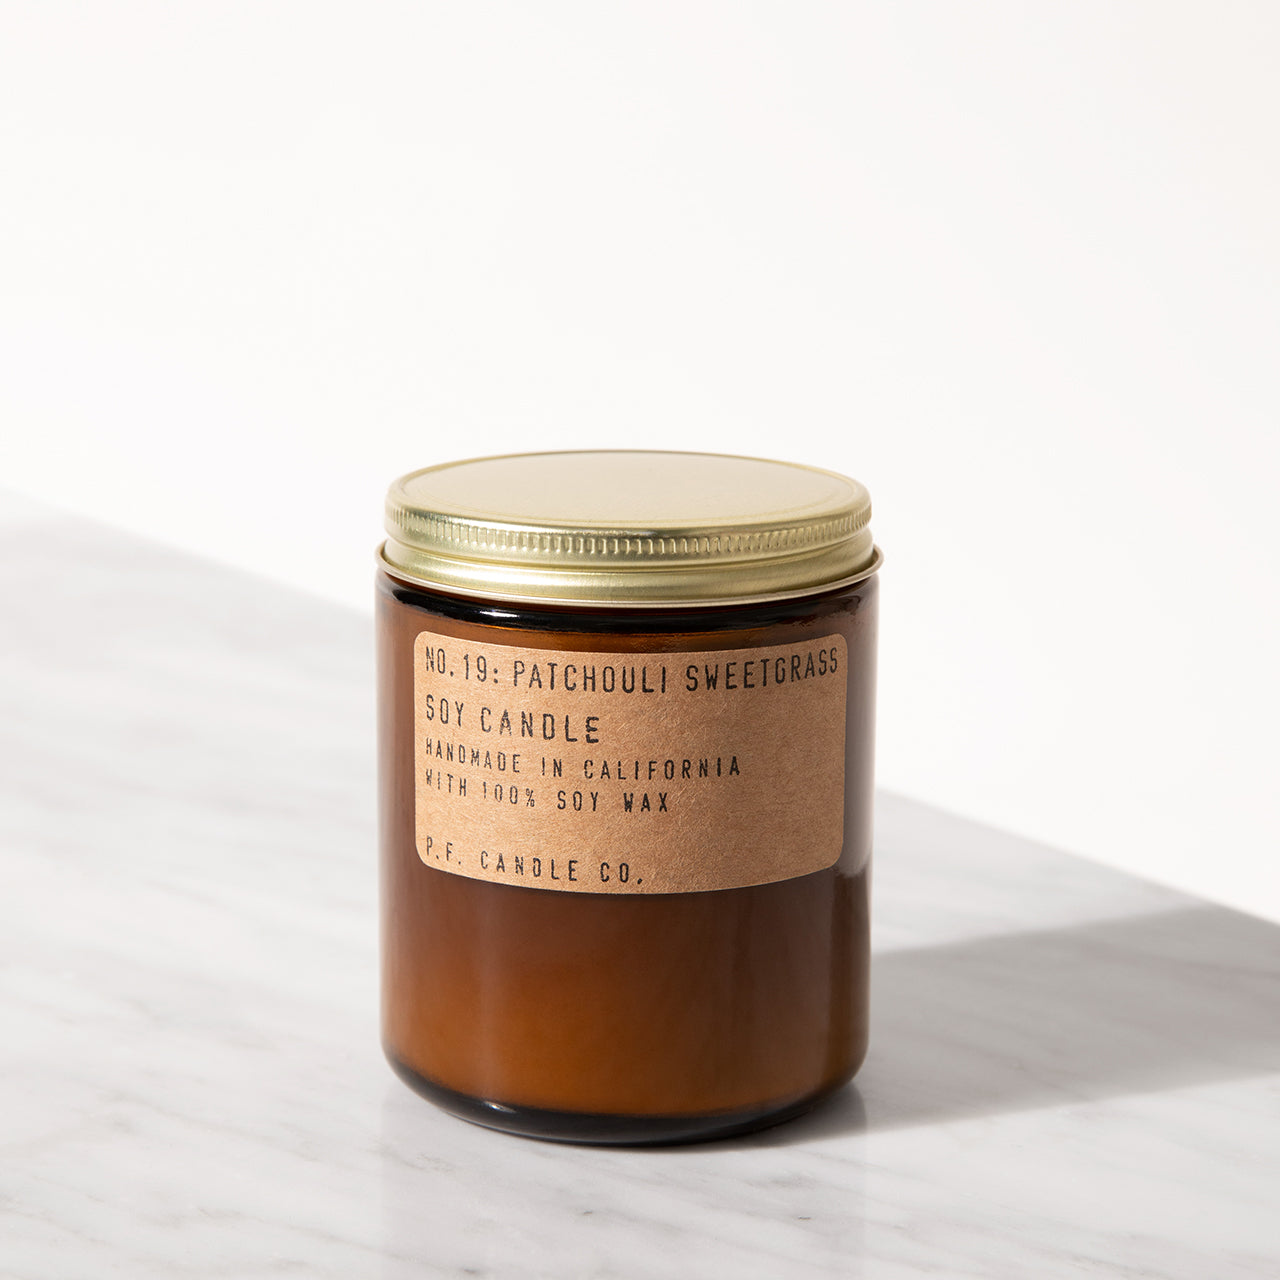 Patchouli Sweetgrass, Ø7,3 fra P.F. Candle Co.